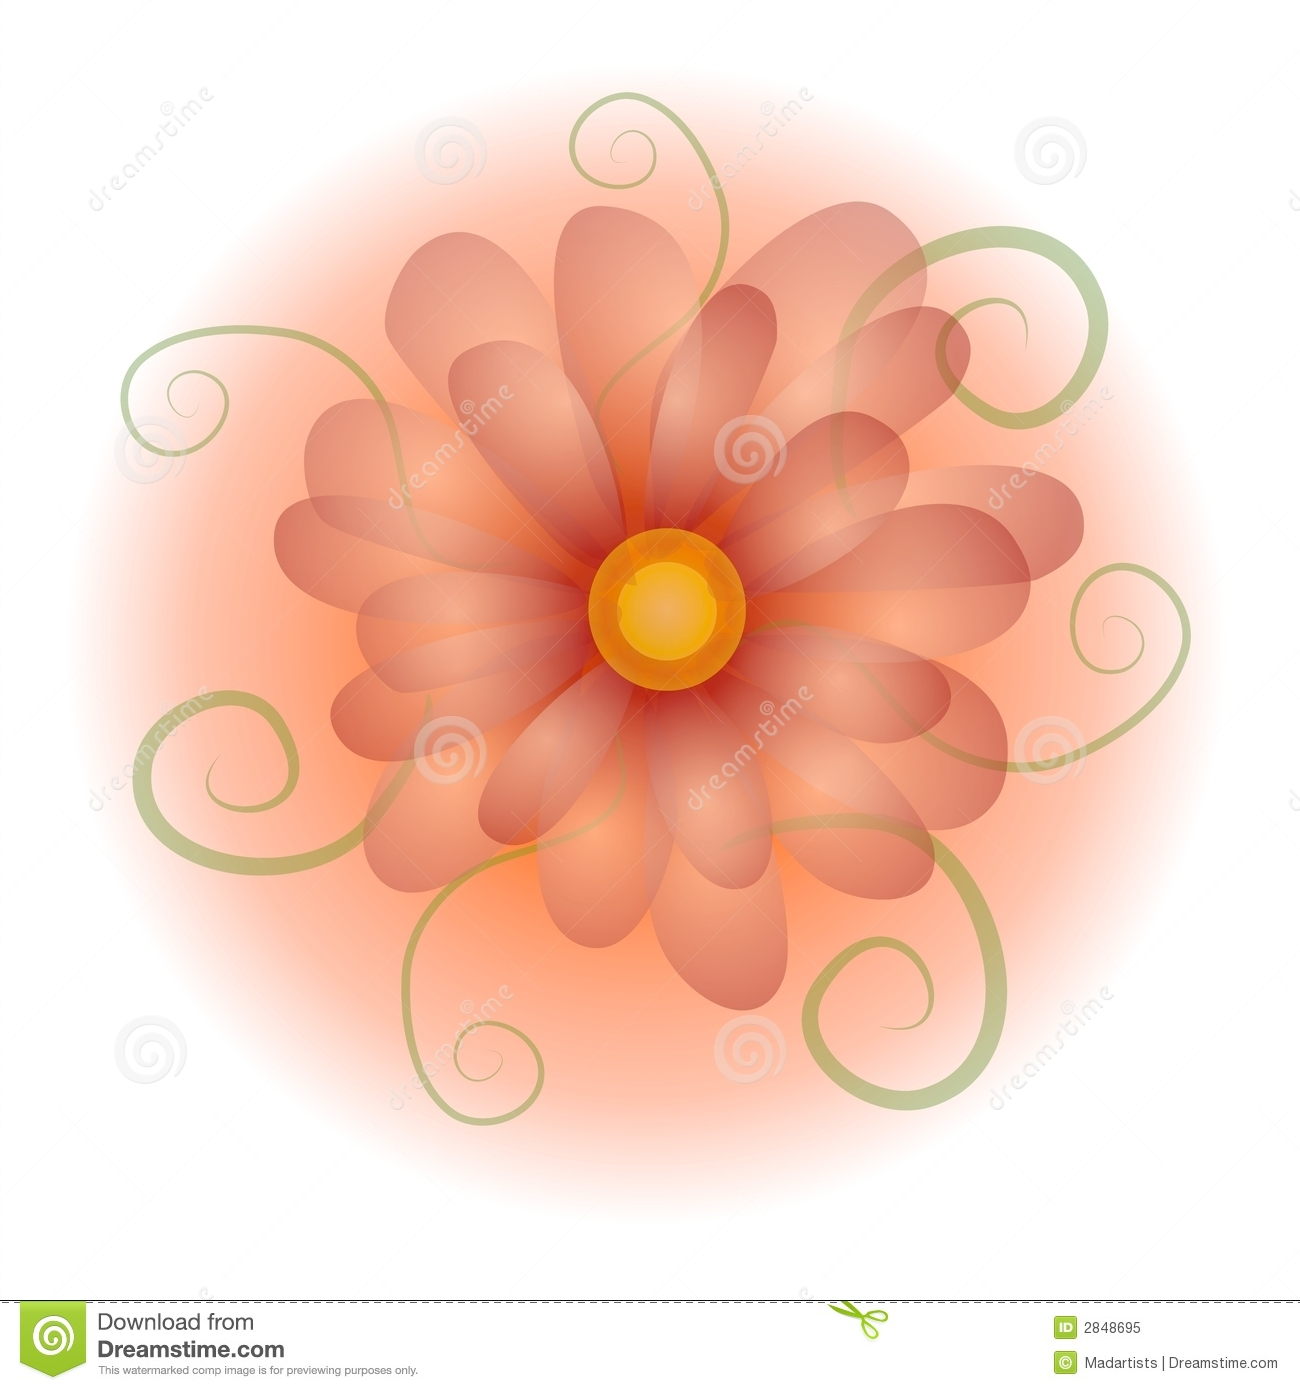 Pastel Opaque Flower Clip Art